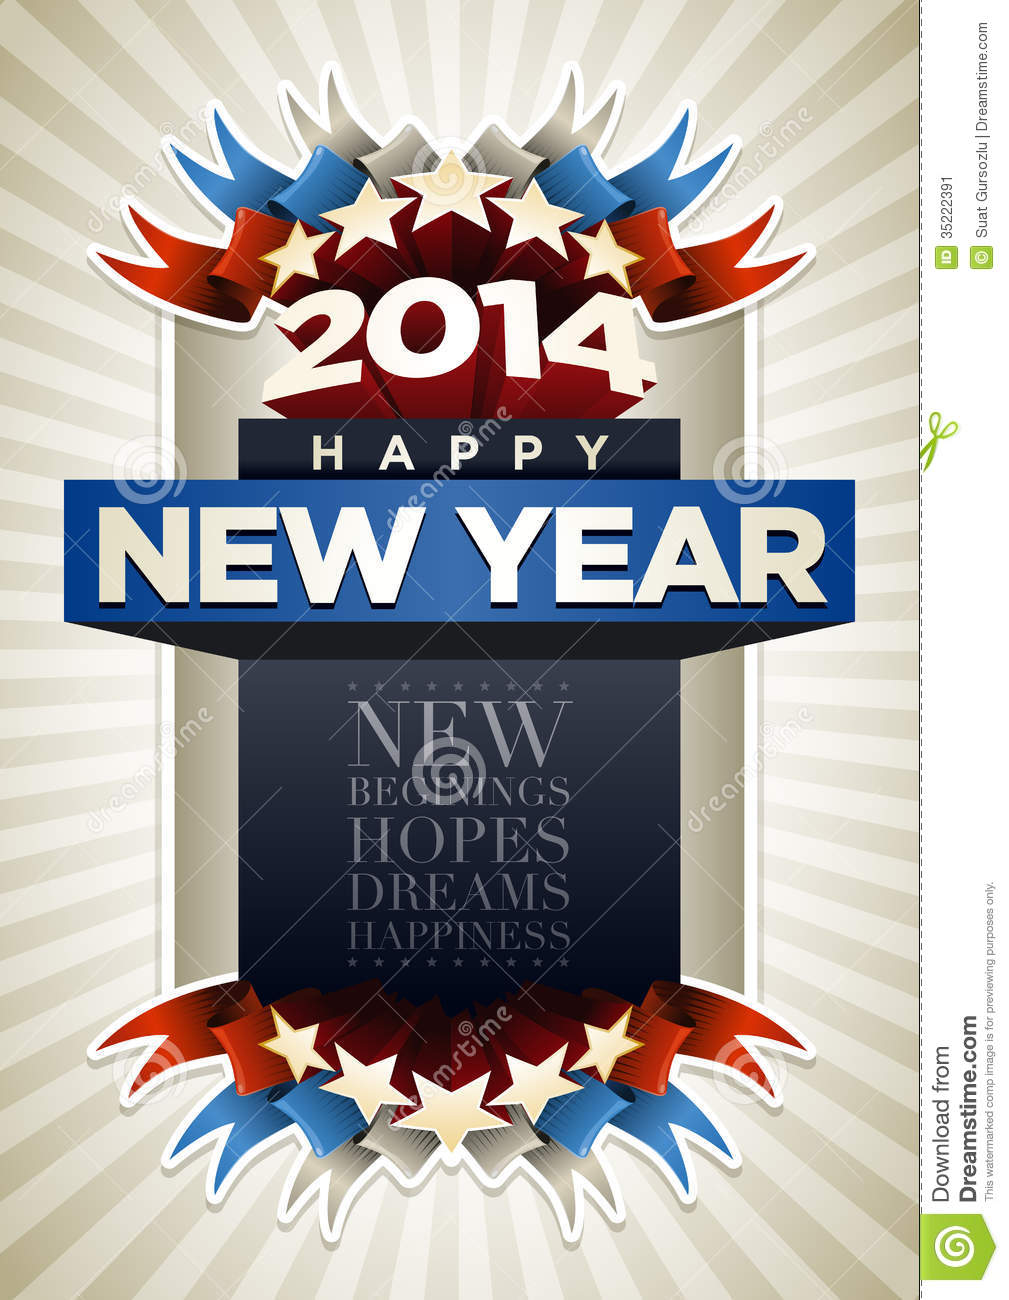 new year poster designs